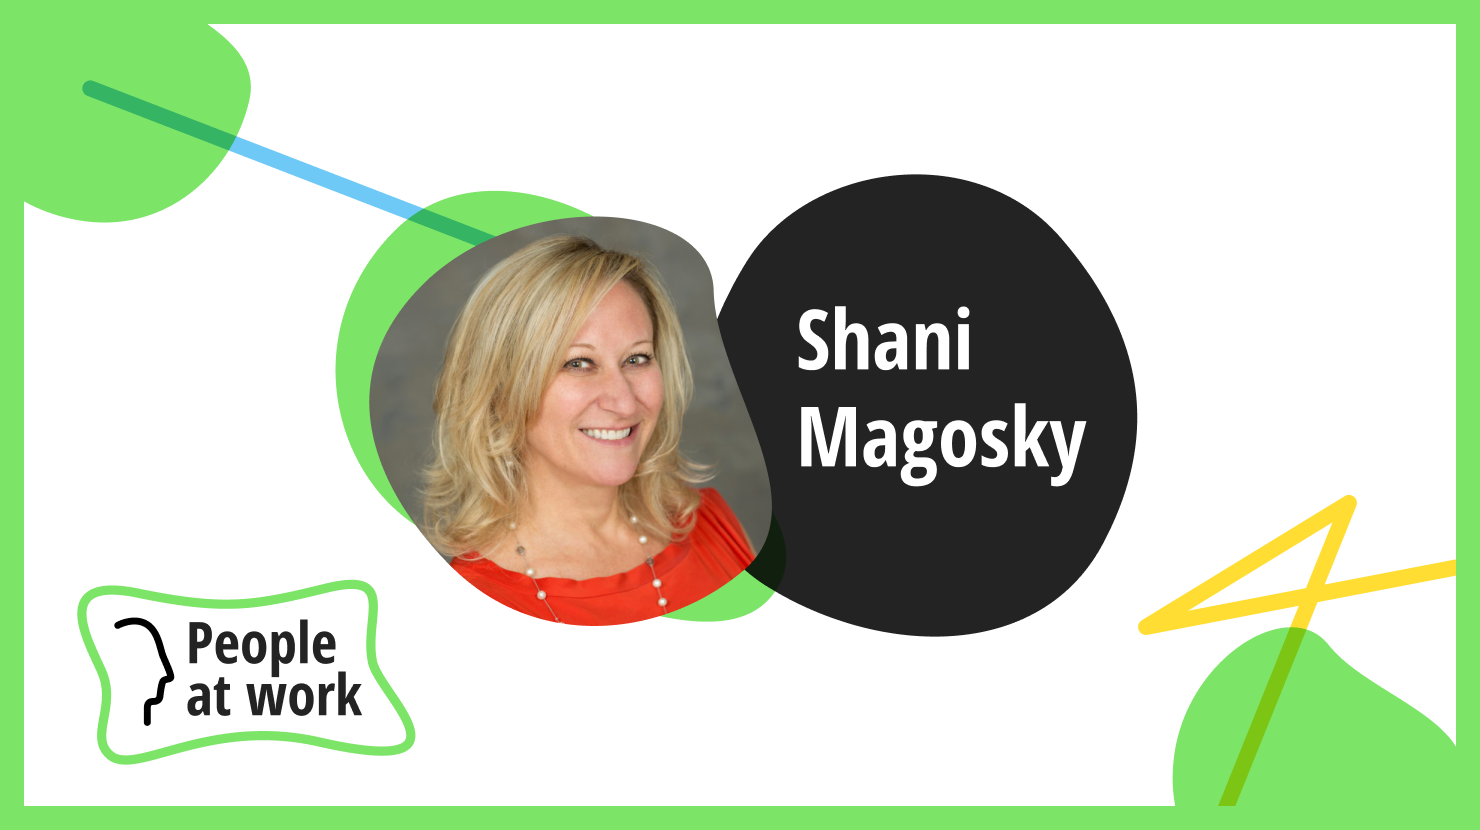 When we fail, we grow with Shani Magosky